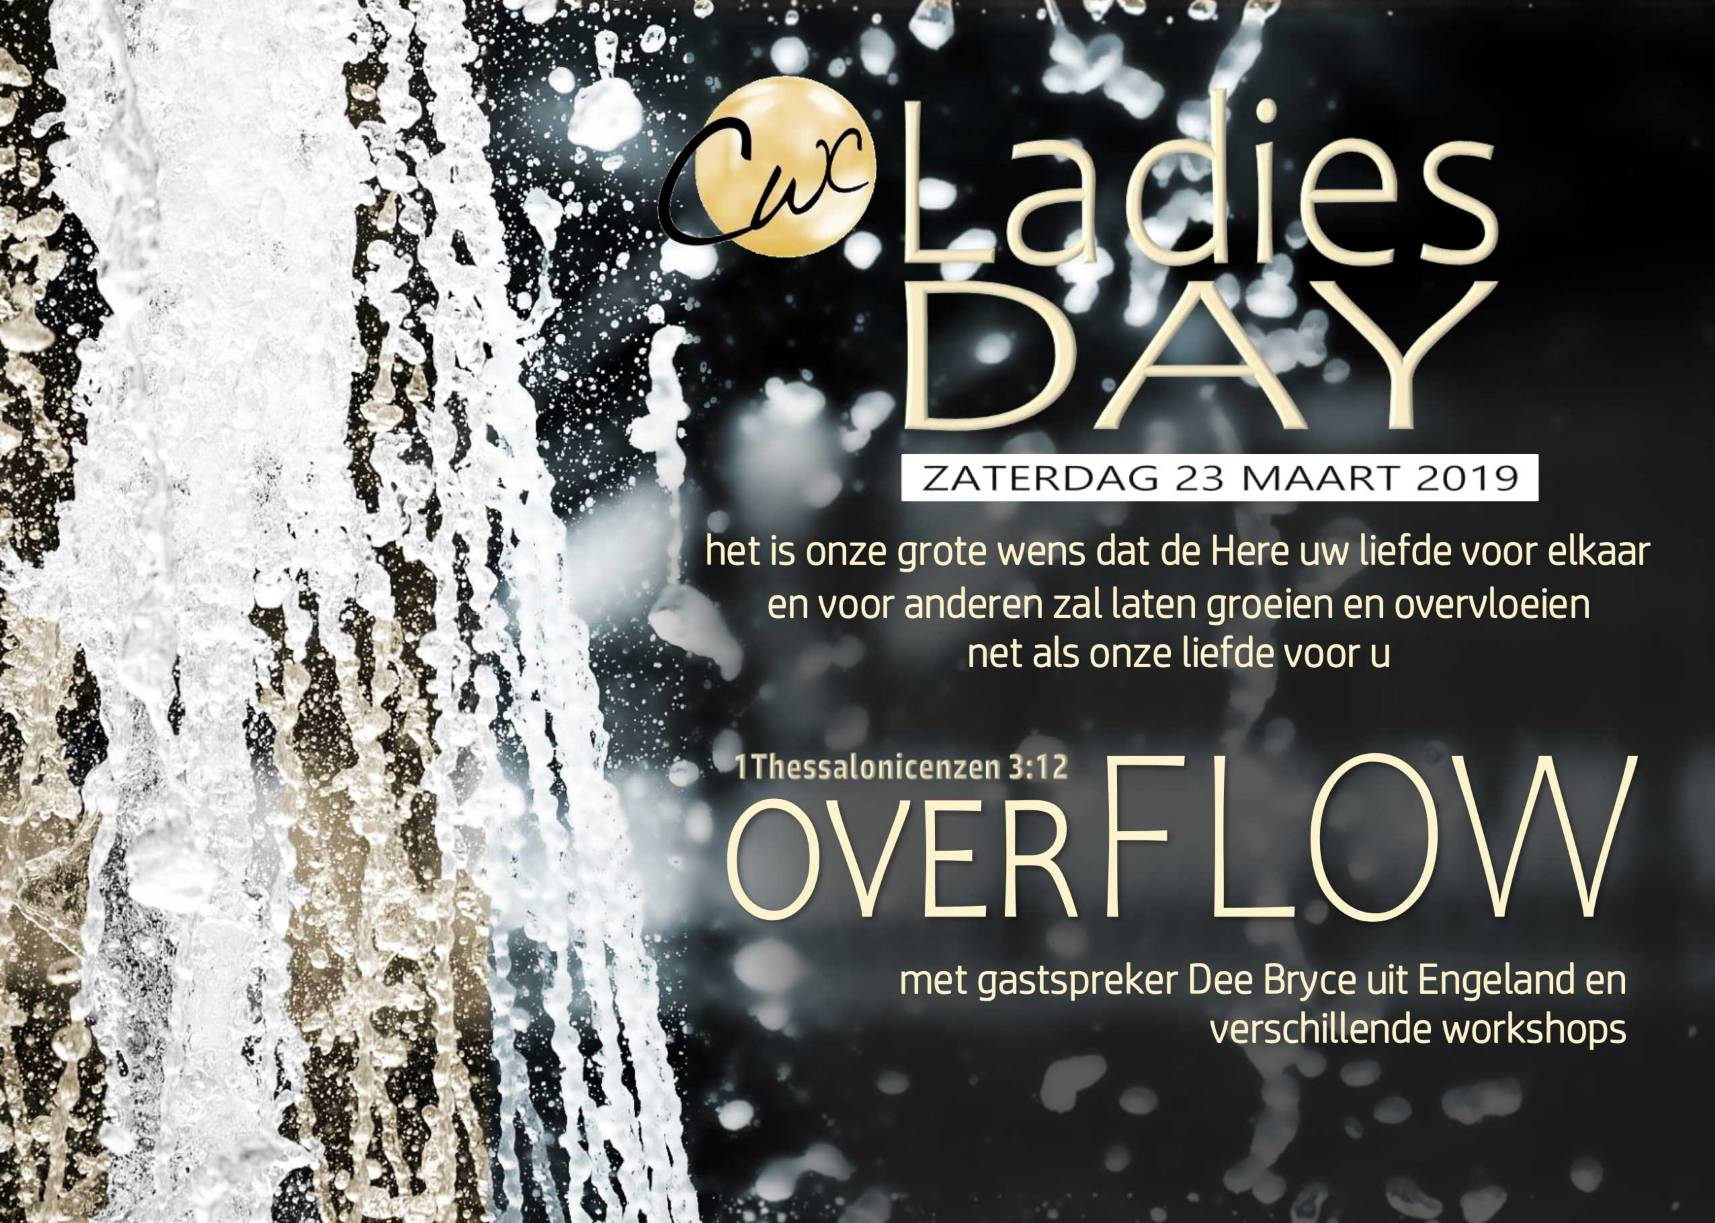 Ladies day 2019